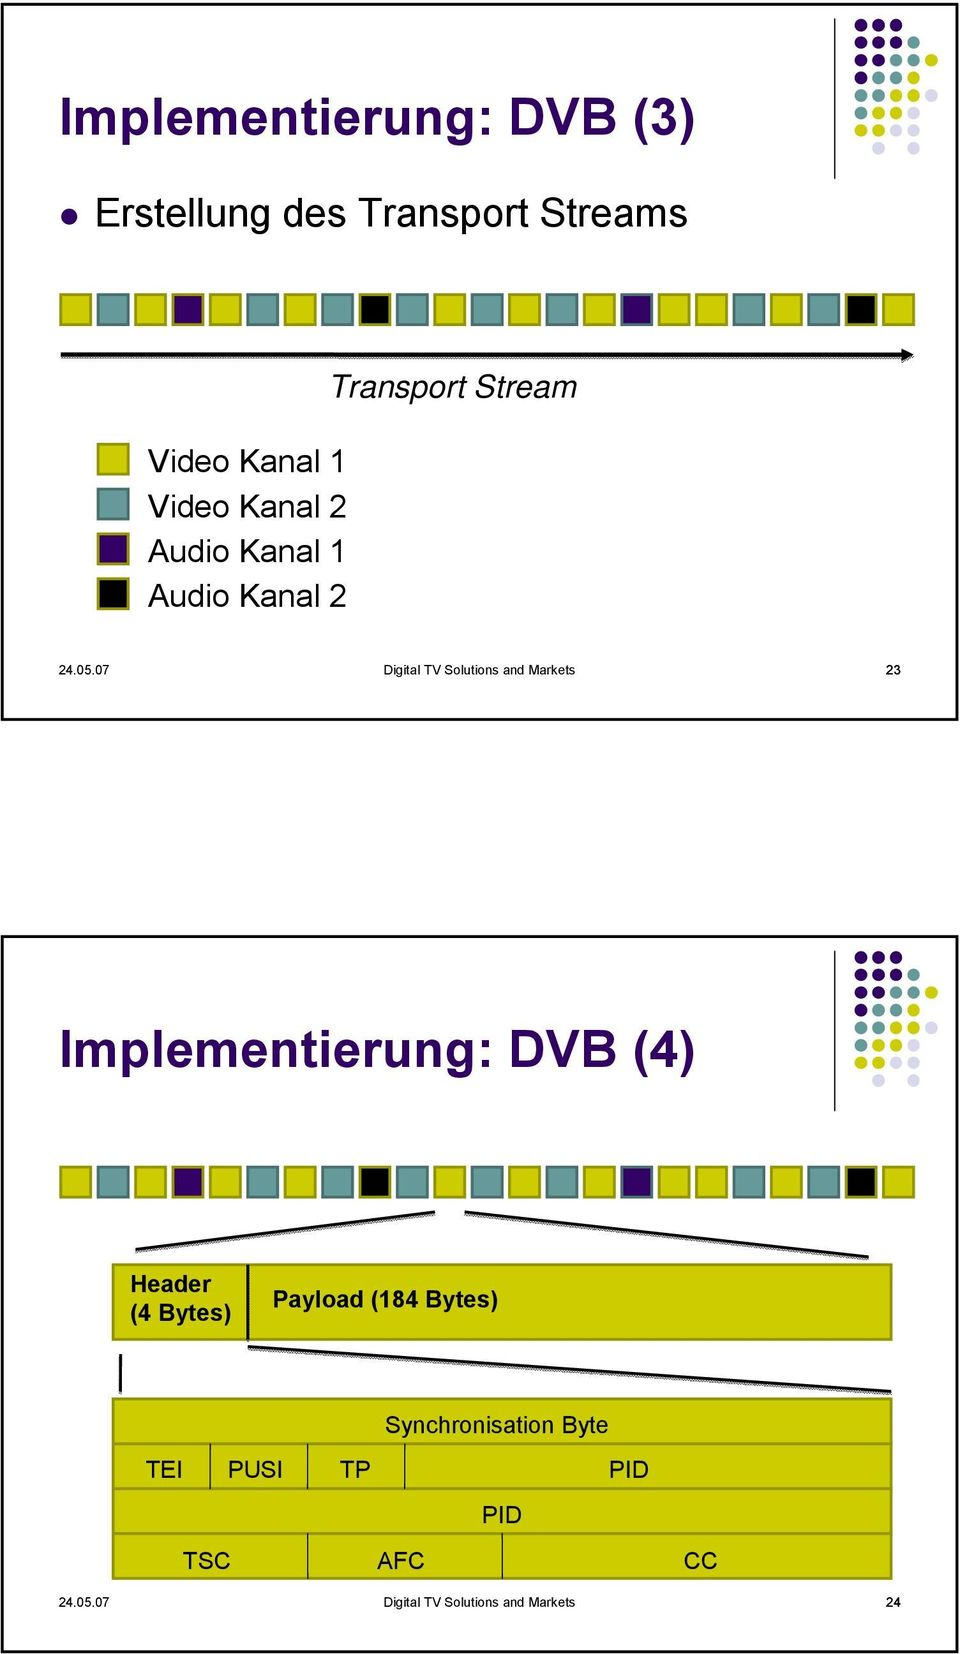 07 Digital TV Solutions and Markets 23 Implementierung: DVB (4) Header (4 Bytes)